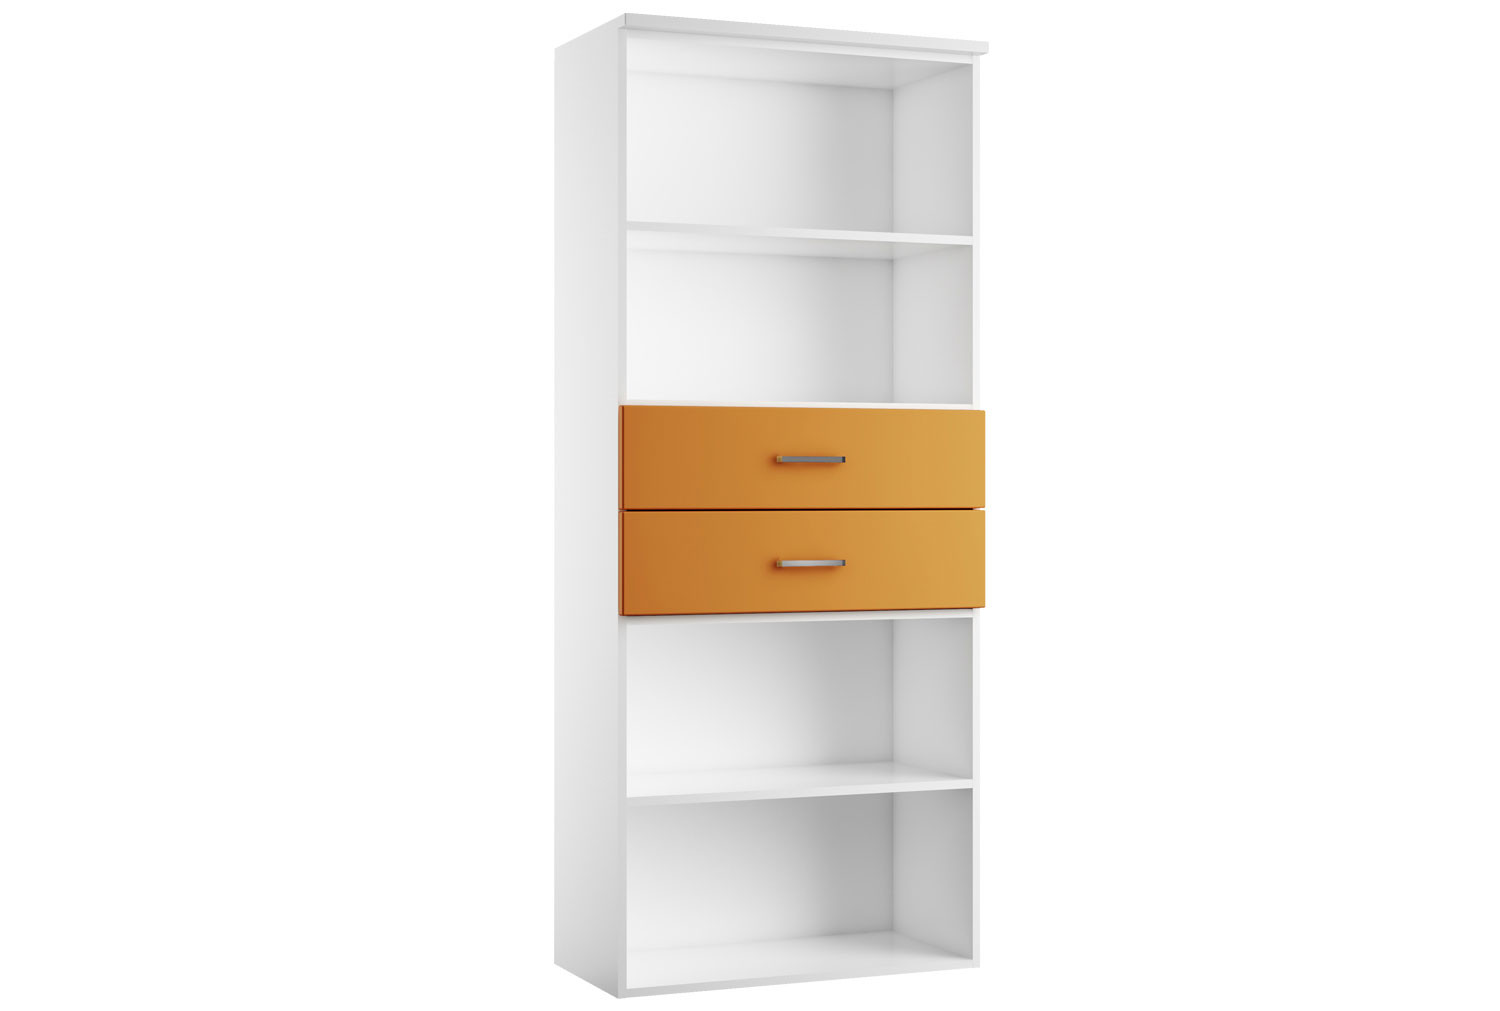 Next-Day Solero Combination Cupboard Type 1 Orange